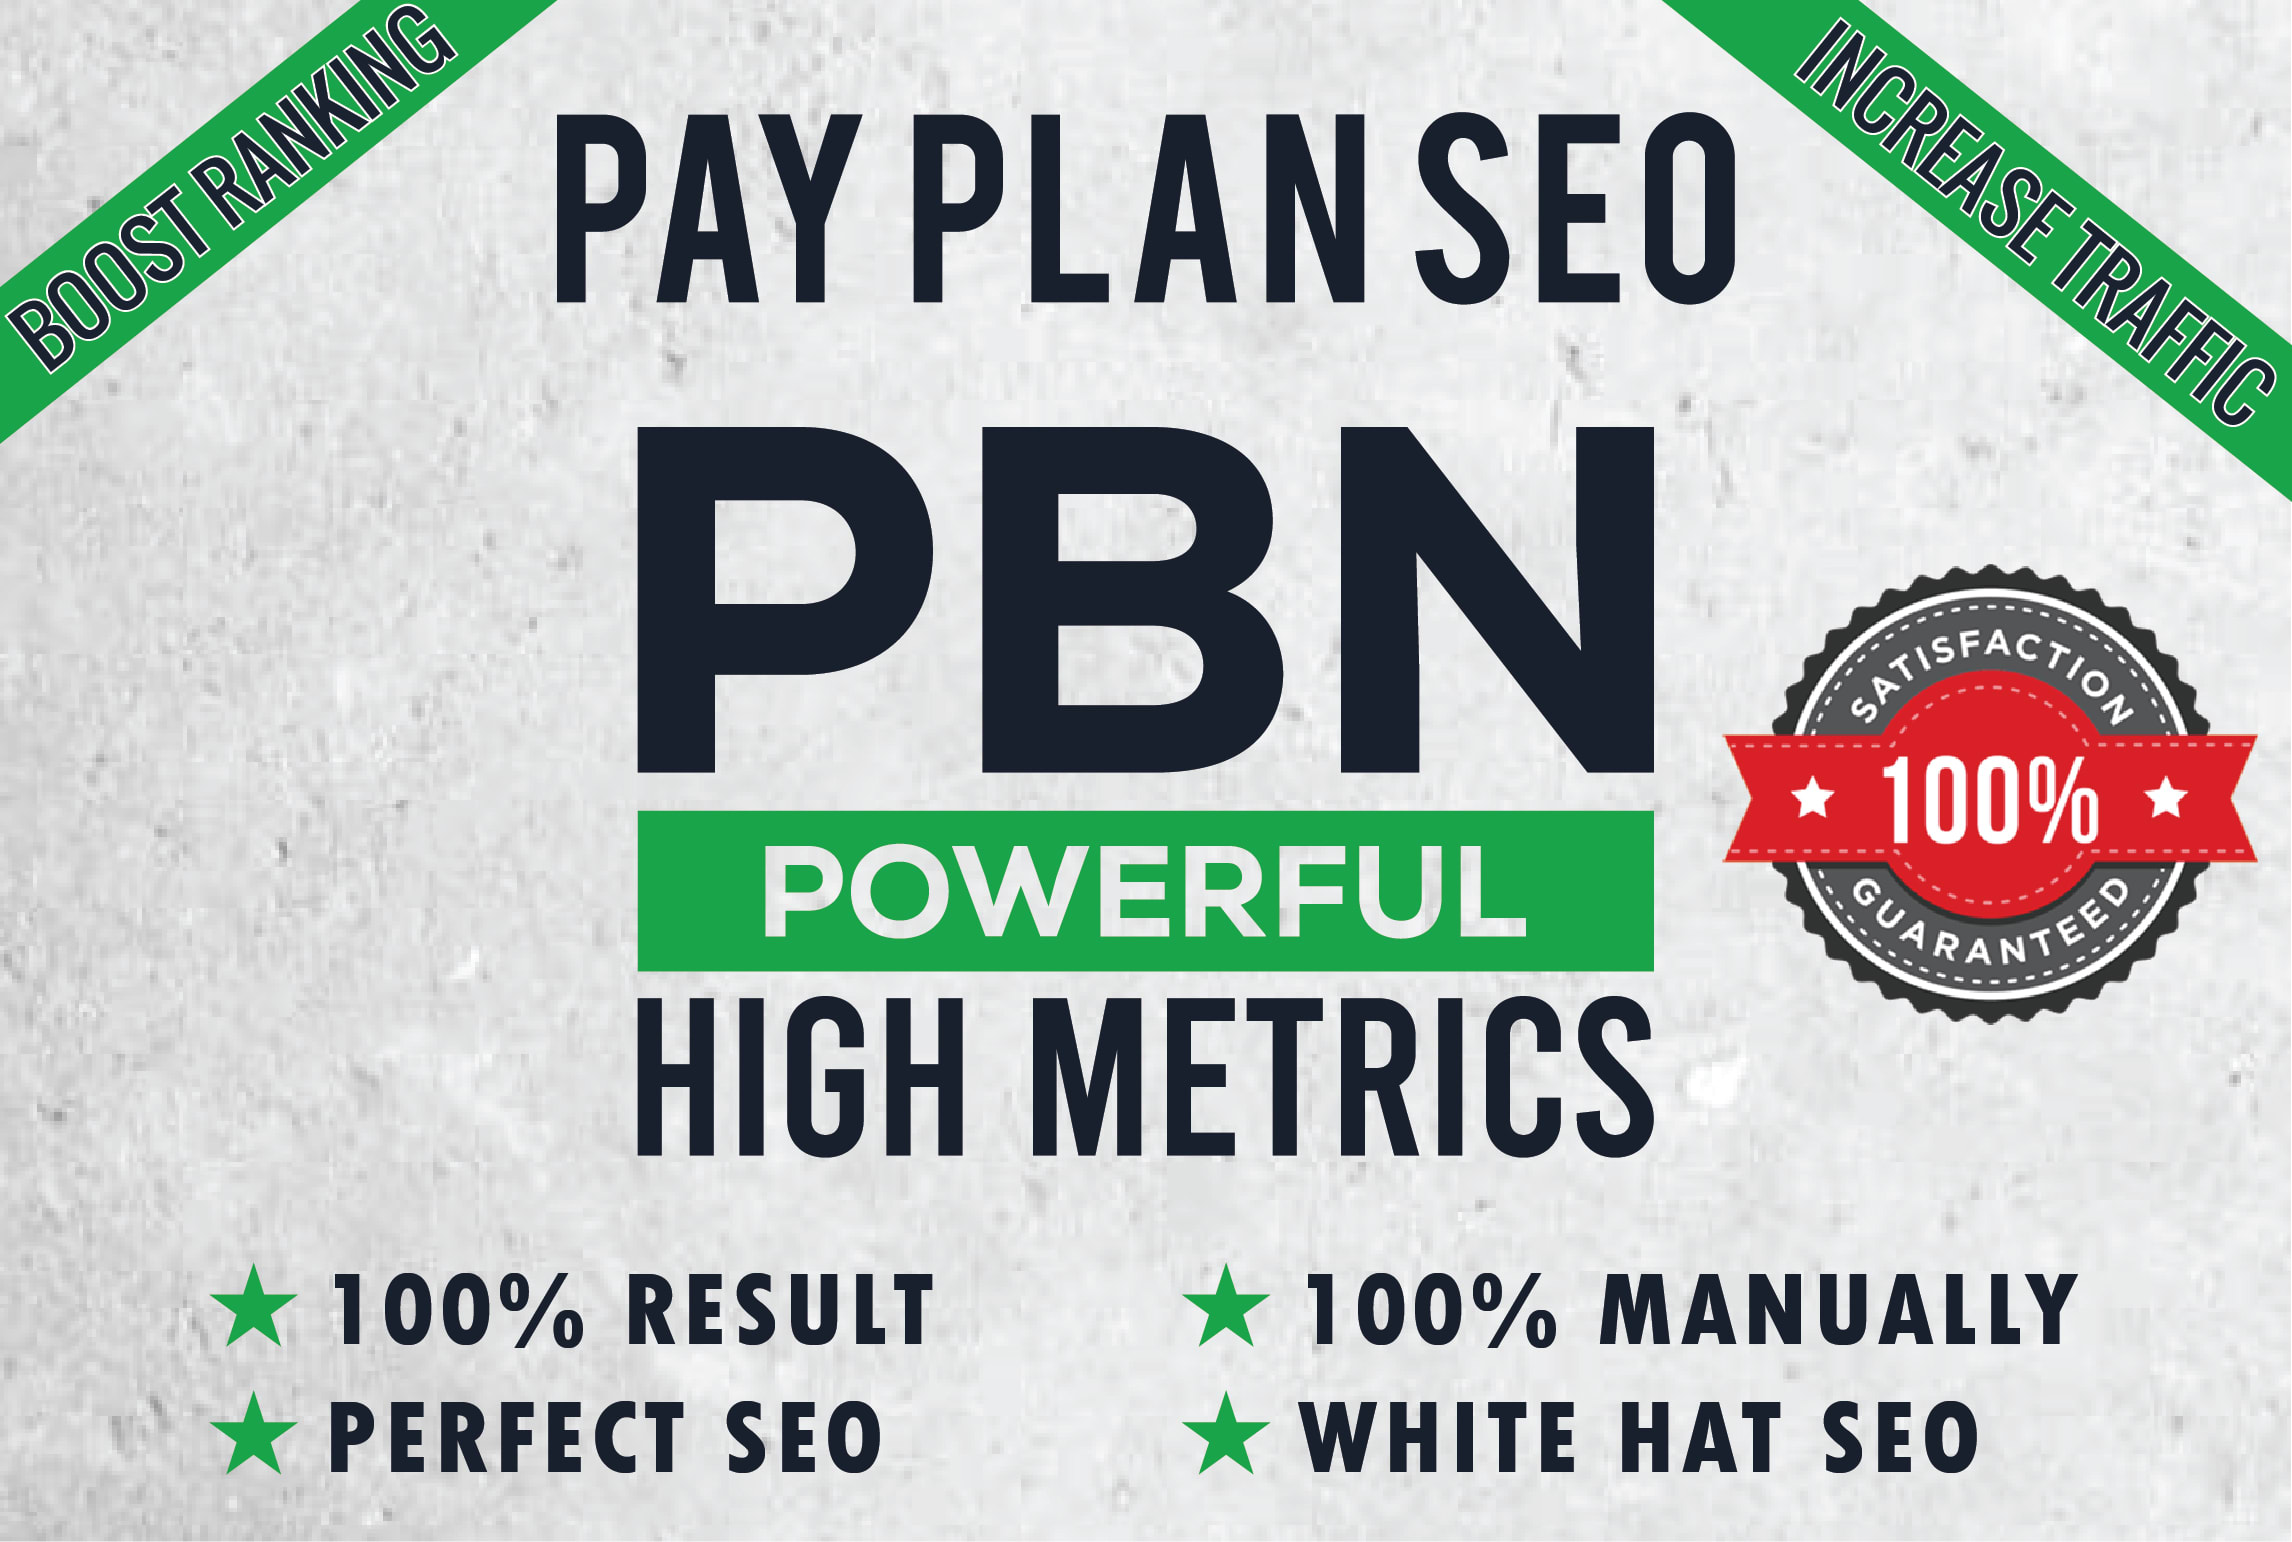 Get 15000 PBN backlinks & BOOST YOUR RANKING WITH HIGH QUALITY BACKLINKS